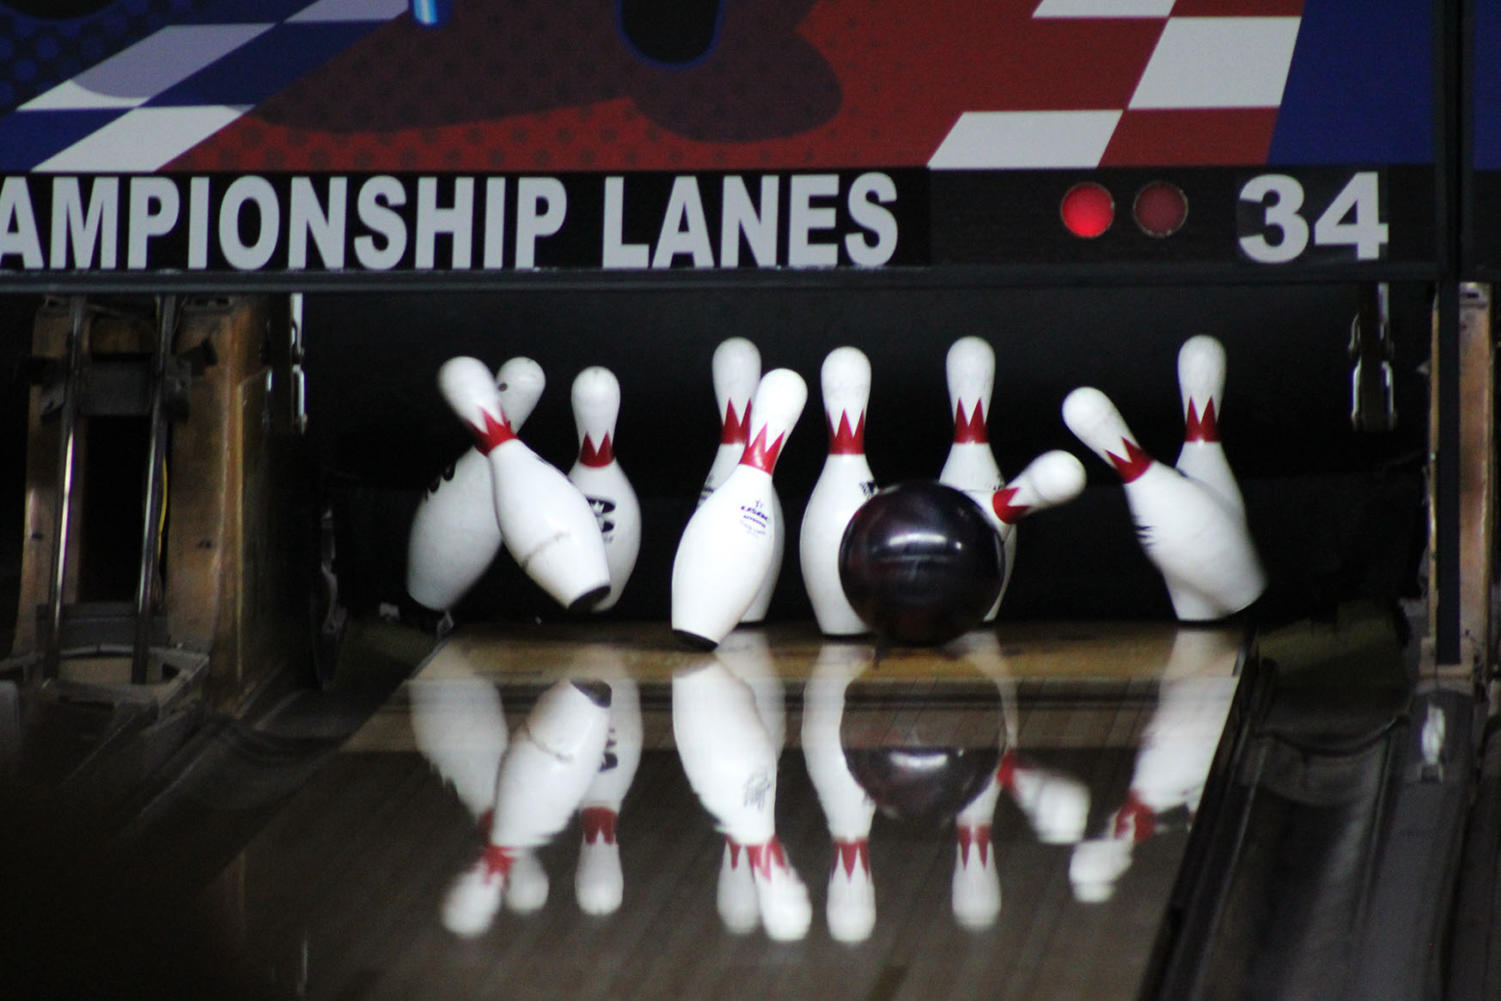 One NHS bowling teammate goes for a strike.